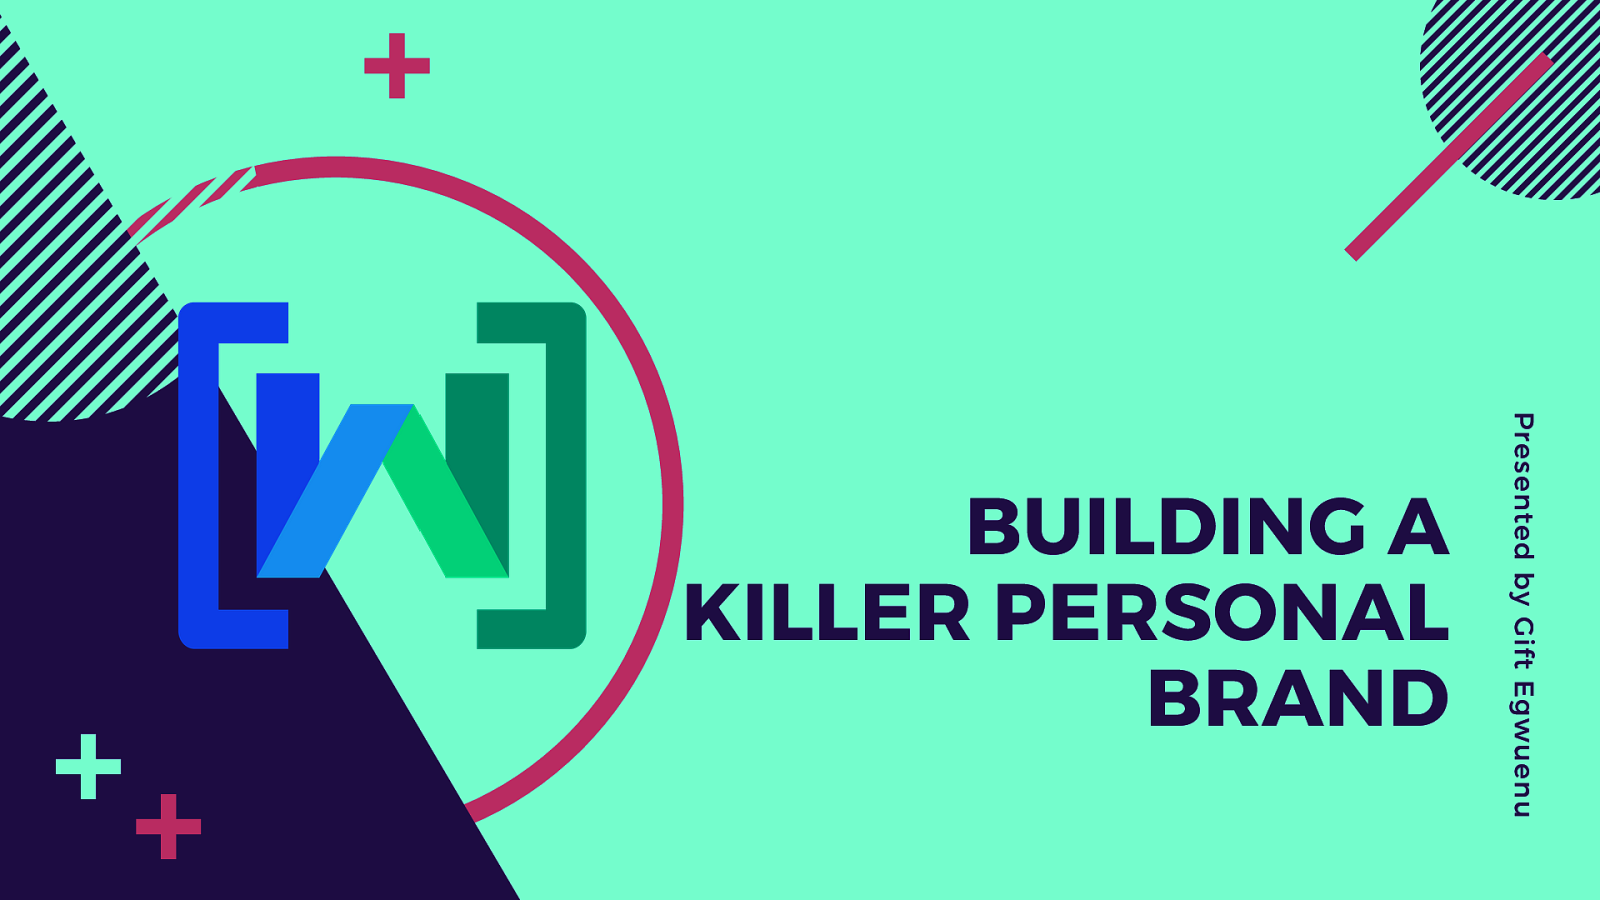 Building a Killer Personal Brand